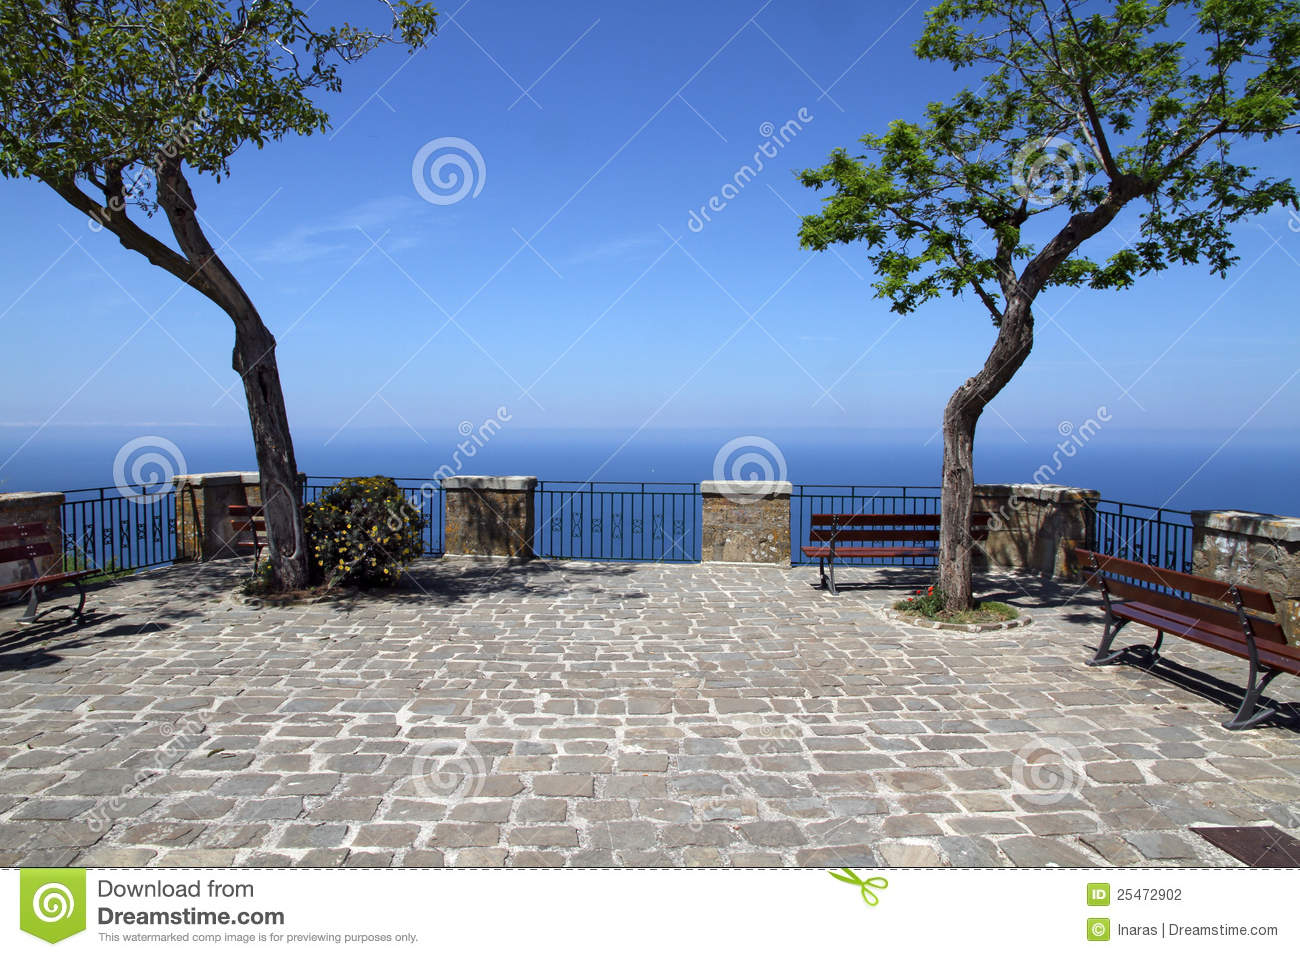 Terrace with trees and sea view stock photography image for Terrace trees